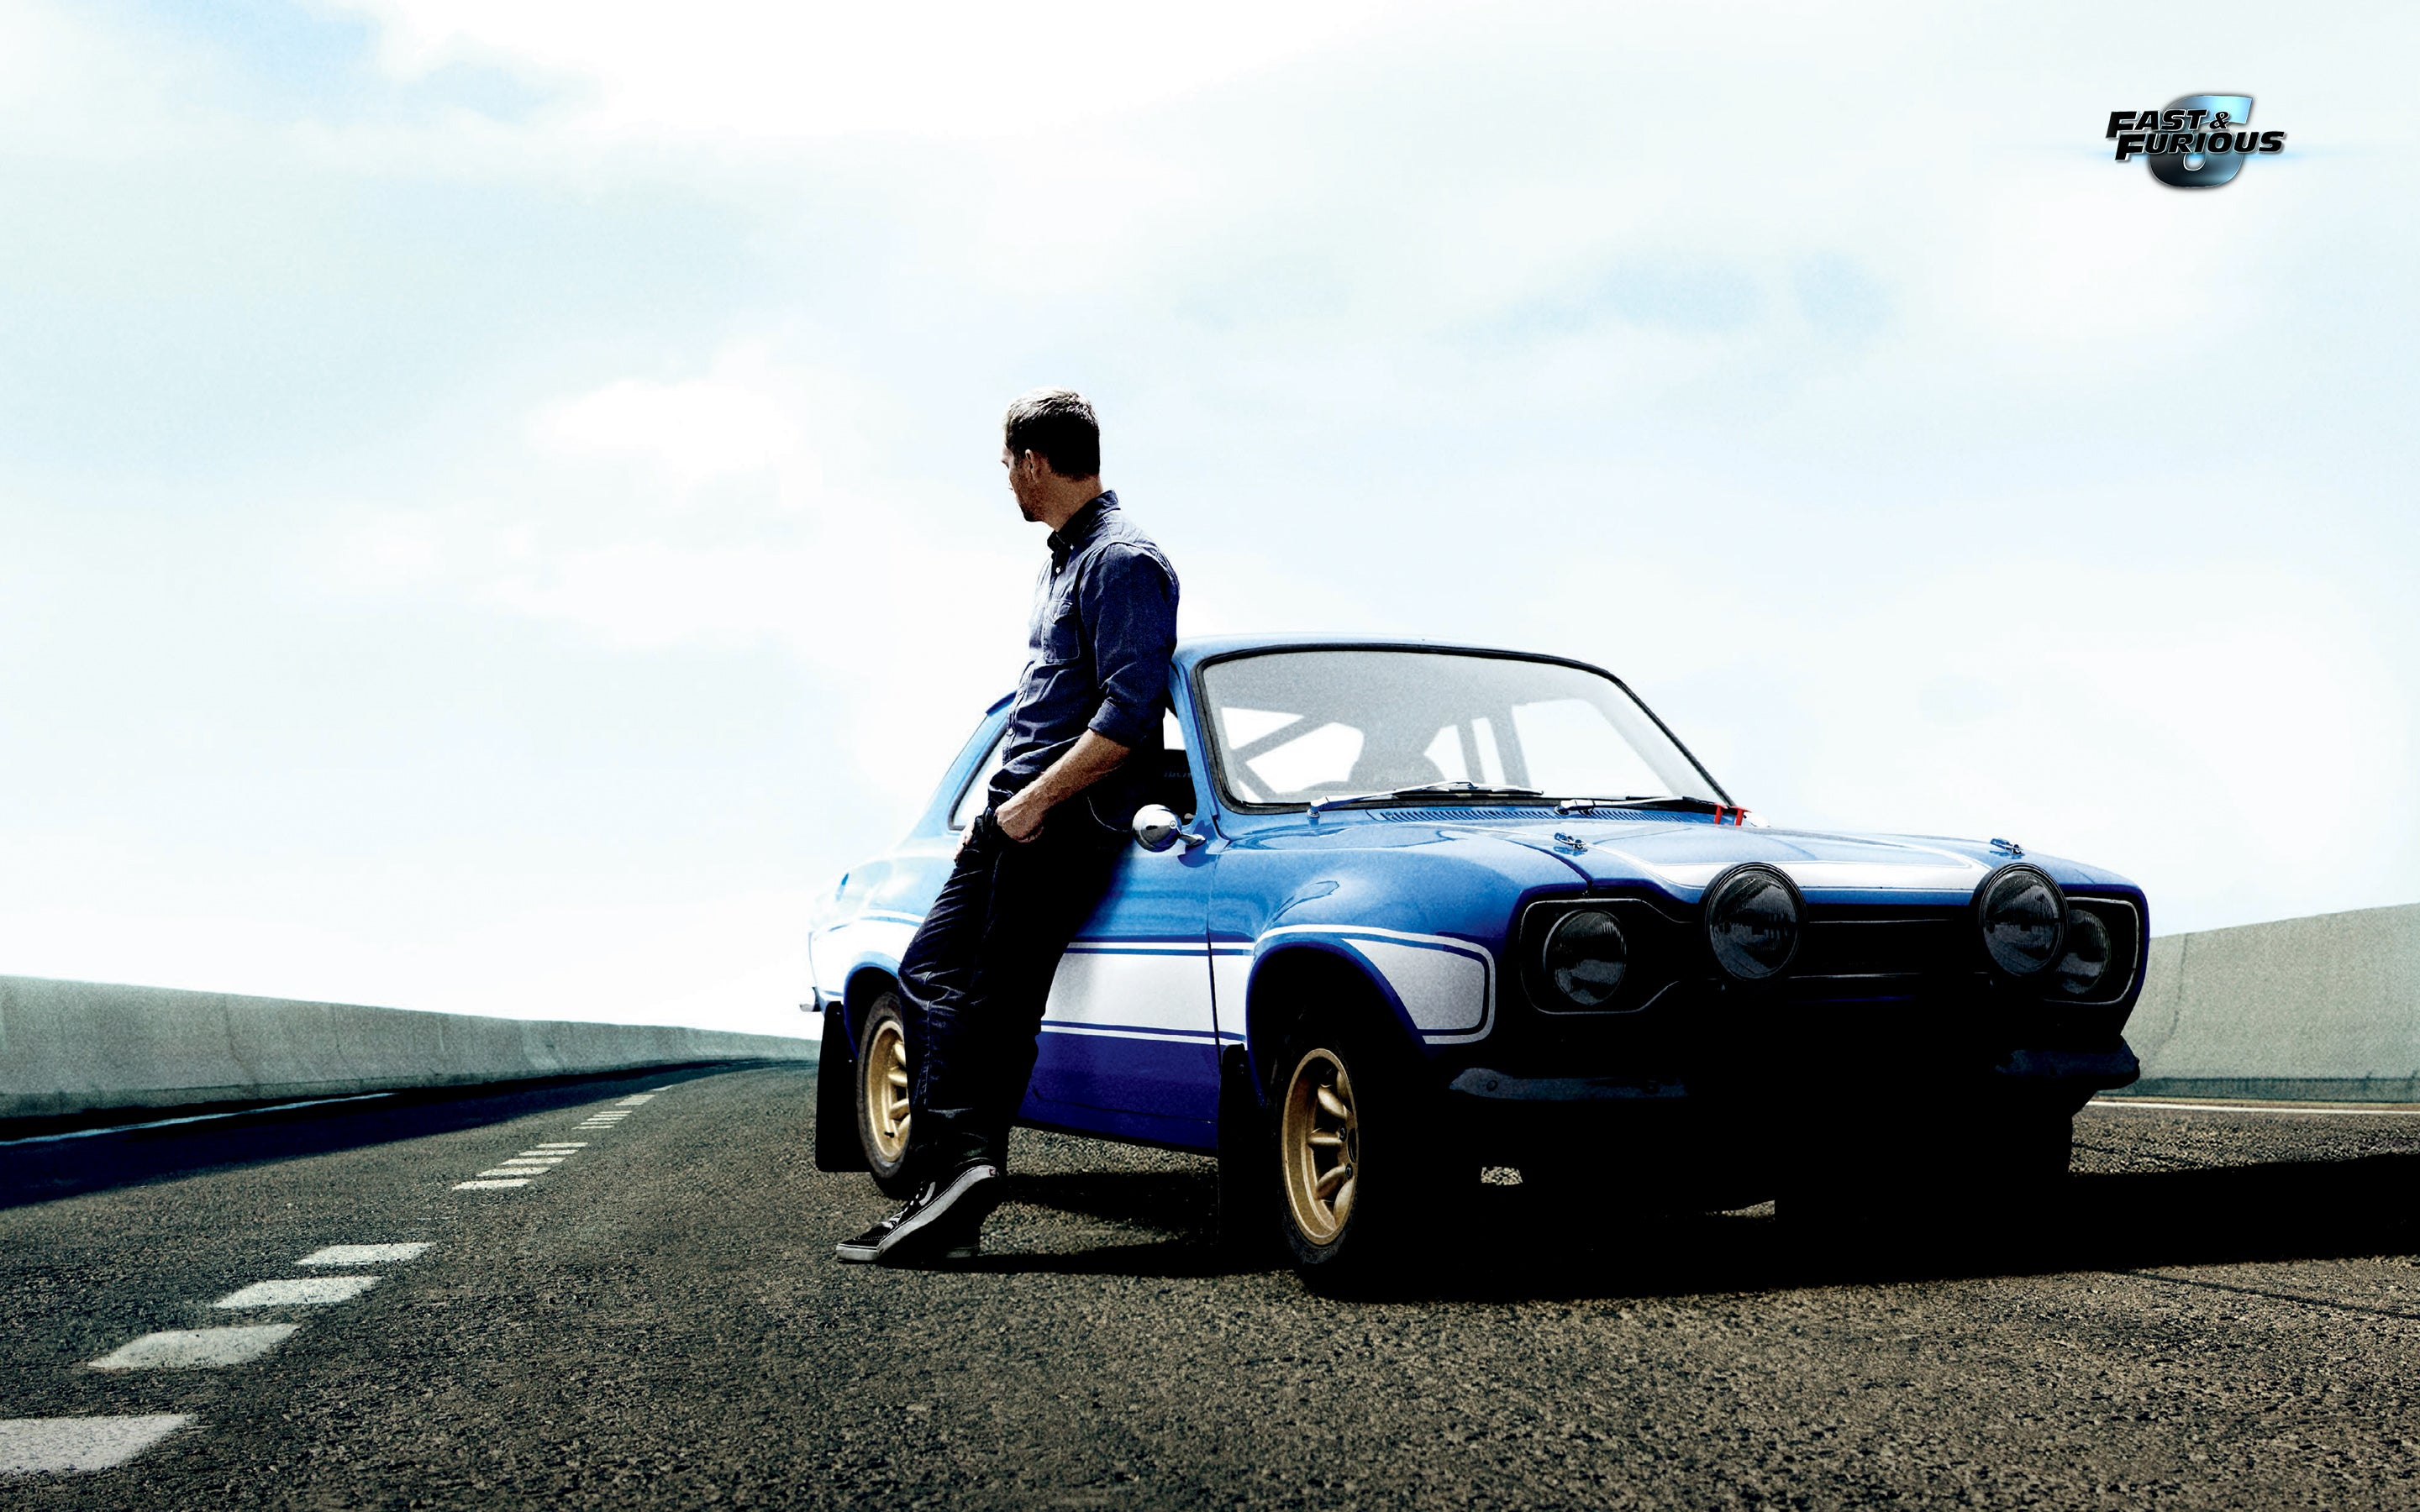 Fast and furious 6 release date